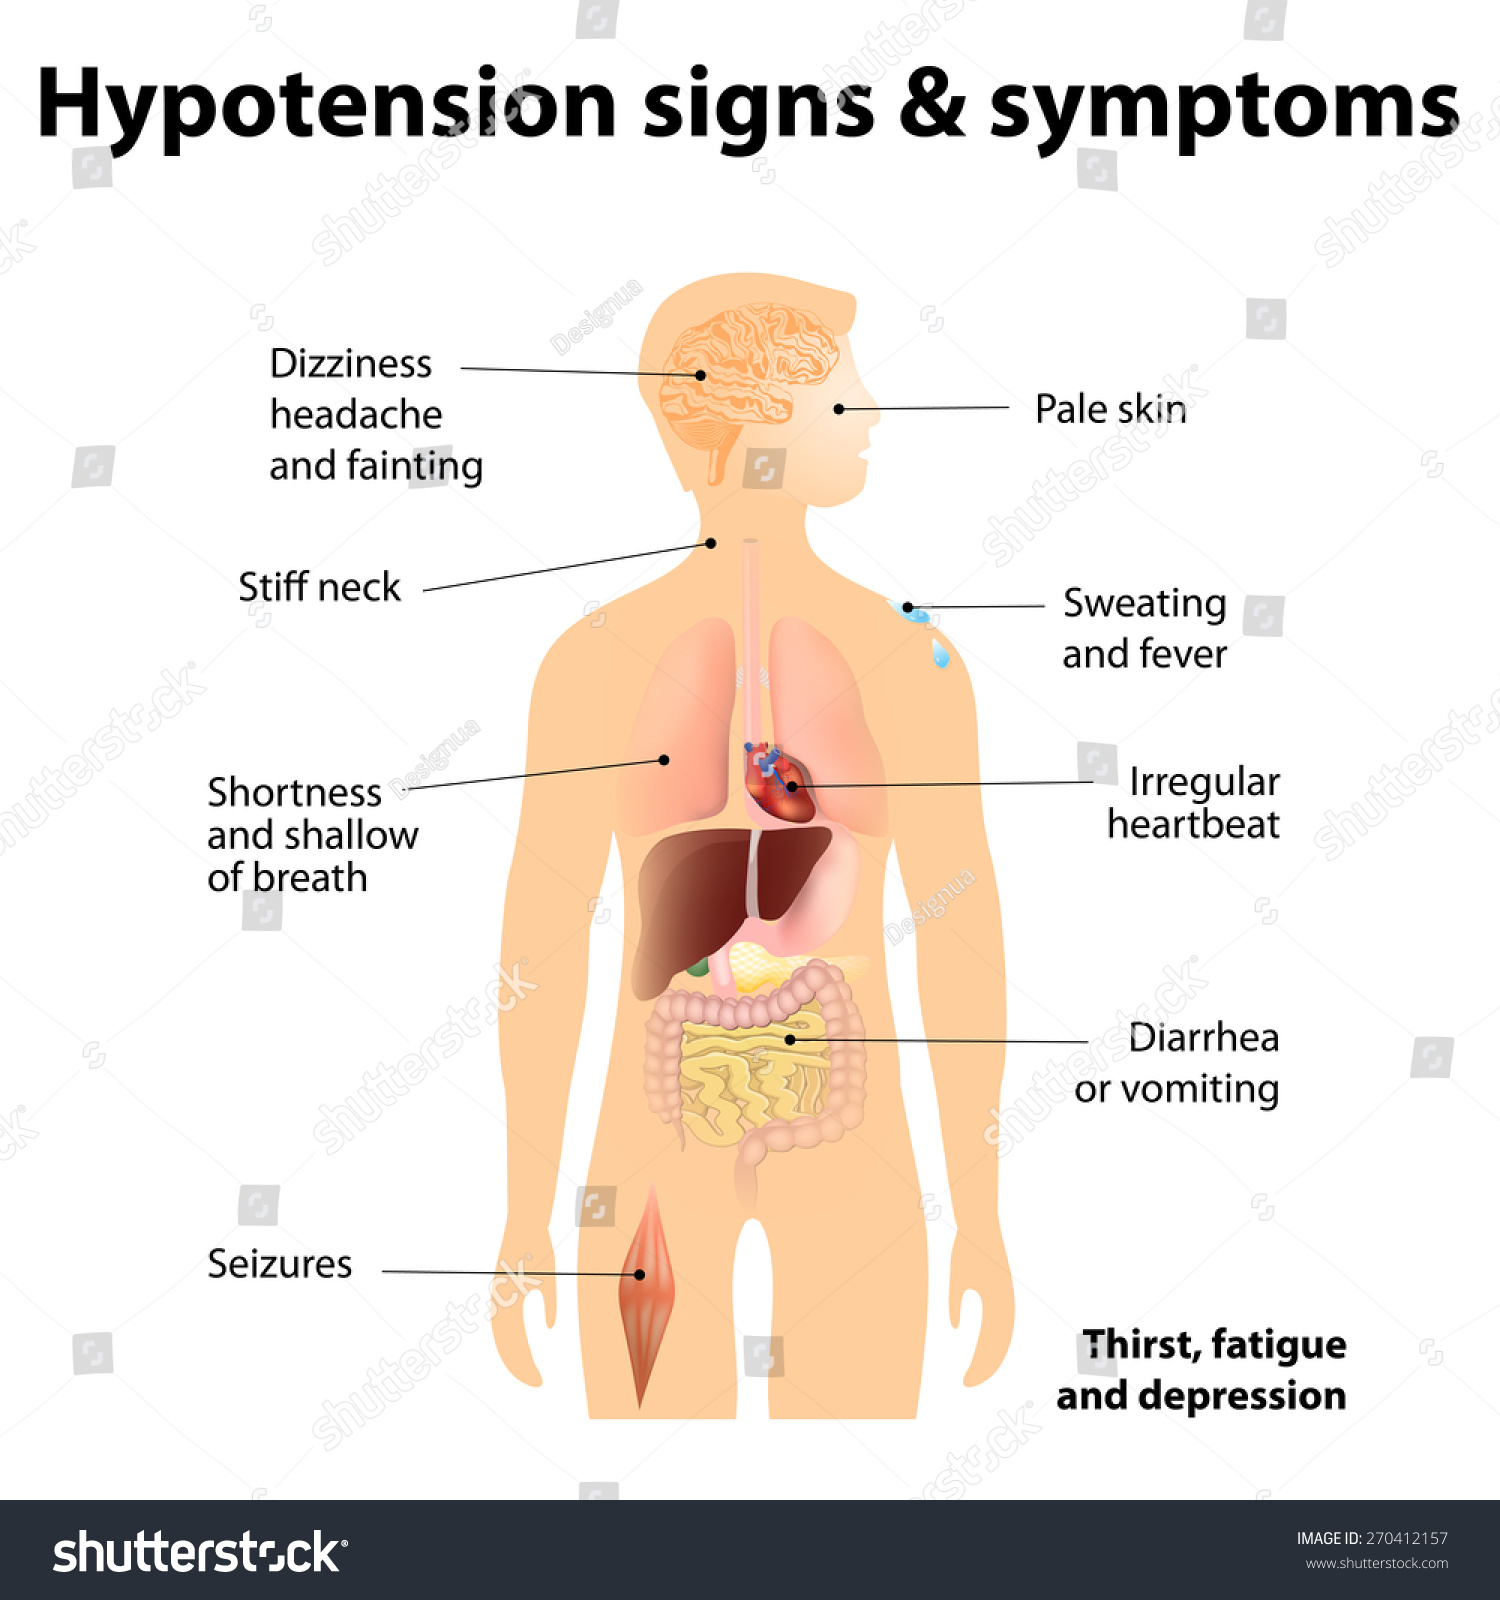 hypotension signs symptoms low blood pressure stock illustration, Skeleton